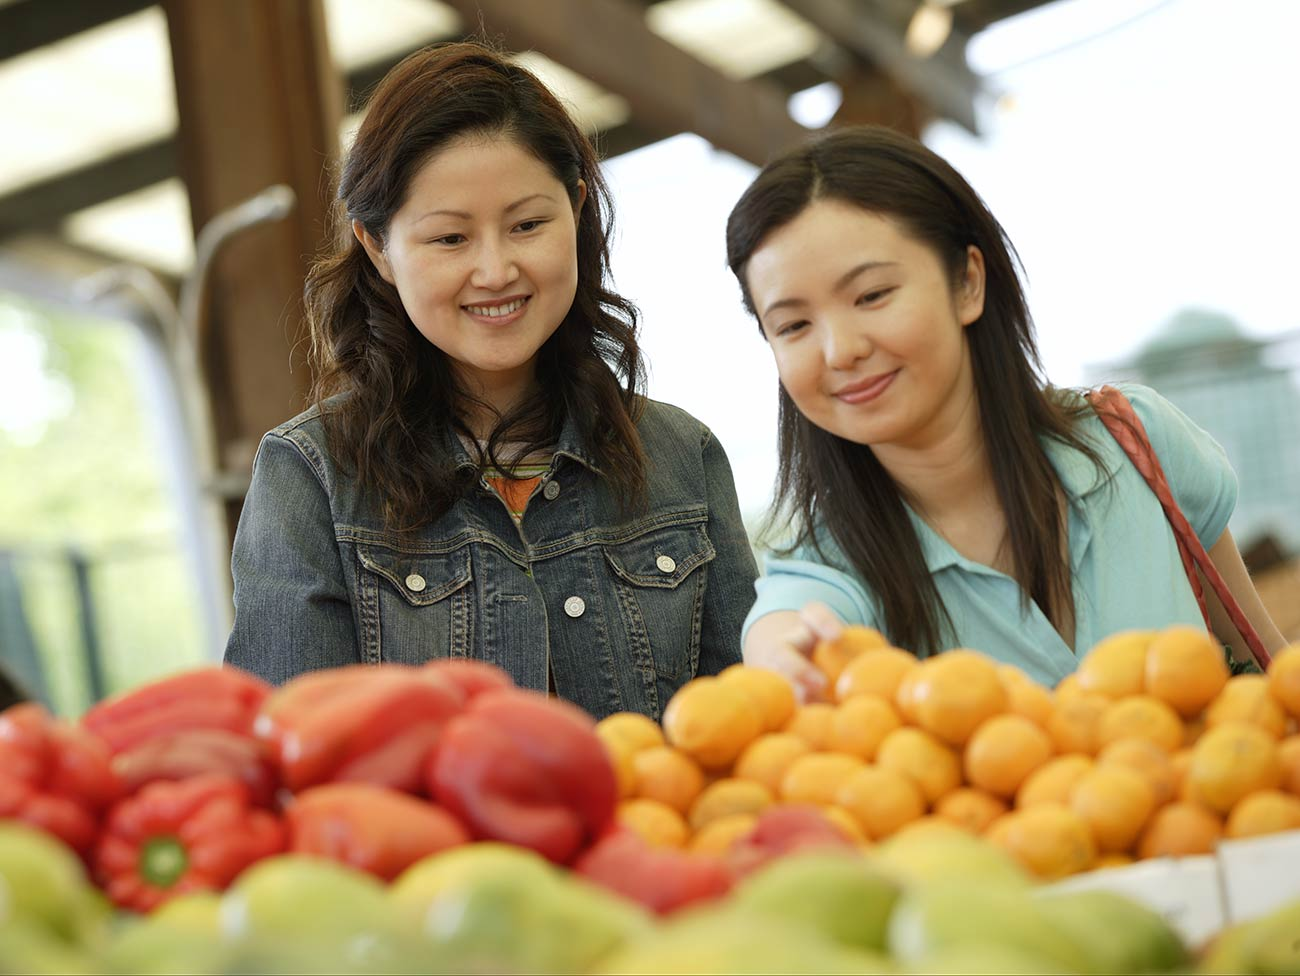 2 women selecting fruit at a farmers market